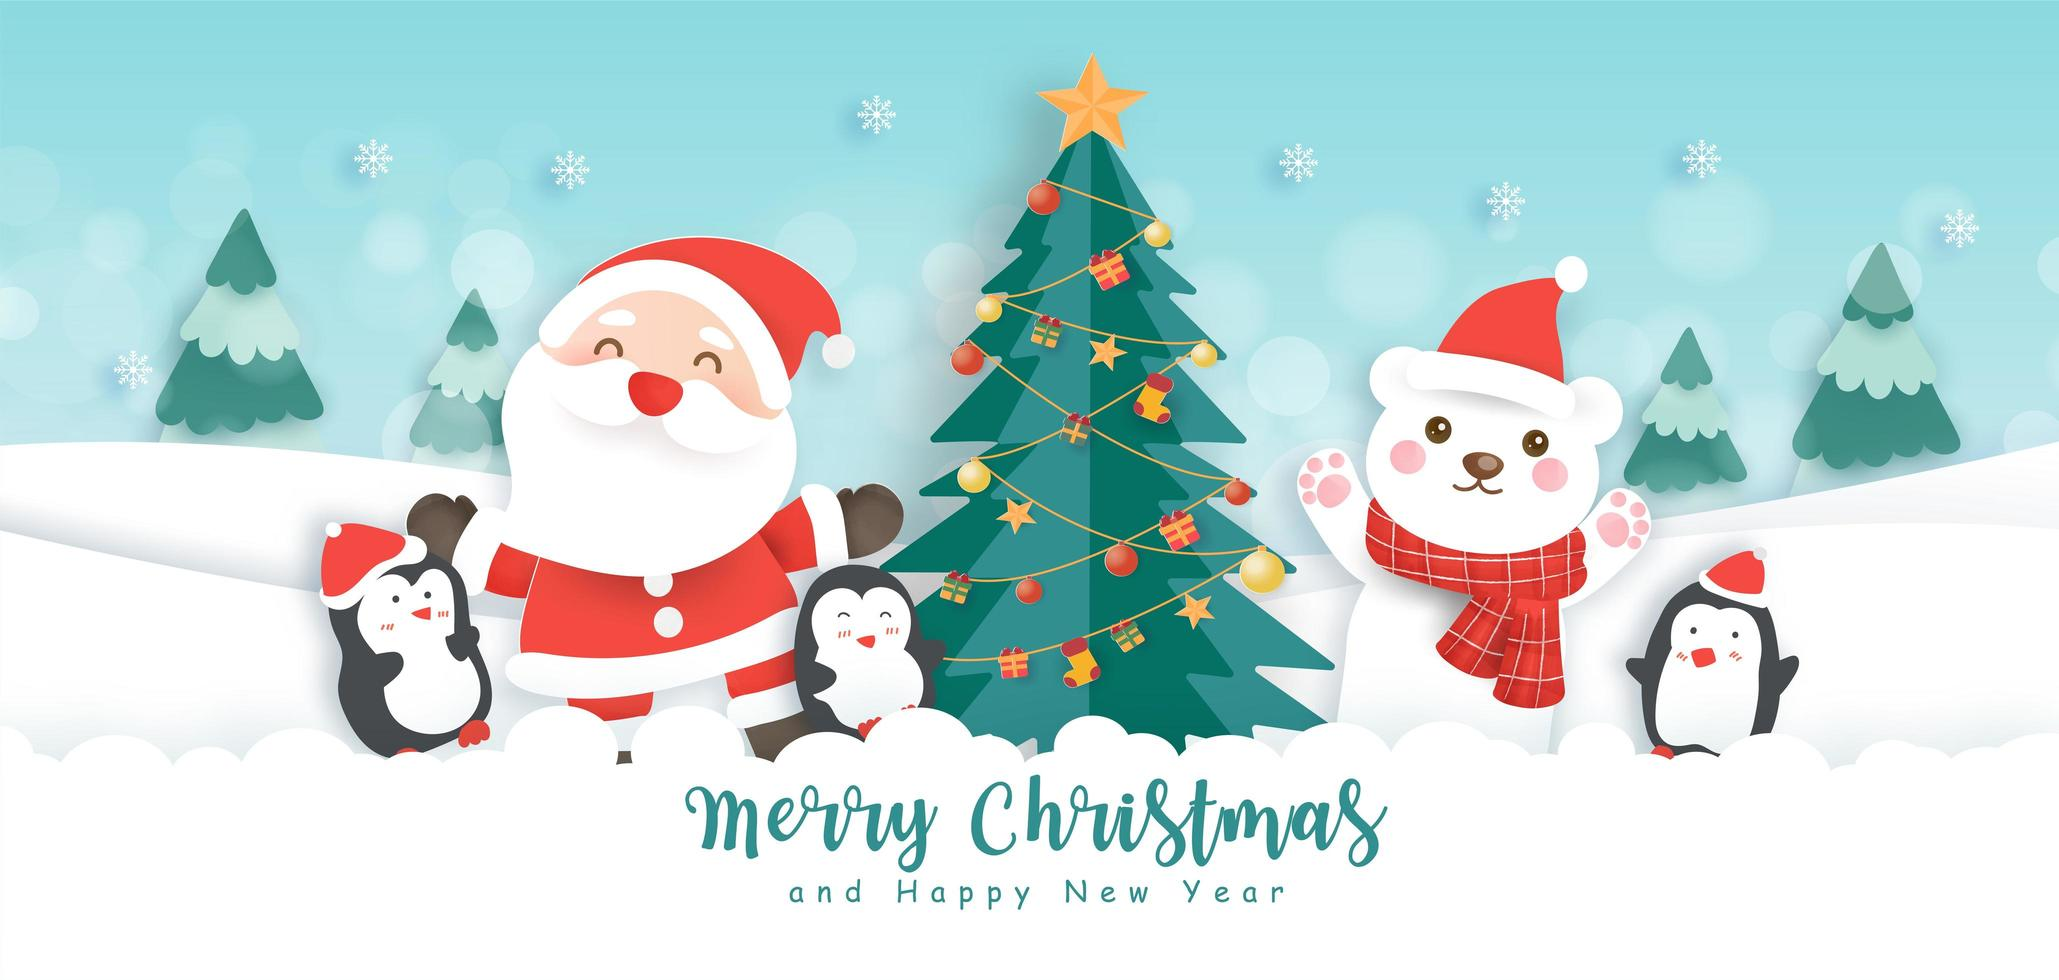 christmas and happy new year banner download free vectors clipart graphics vector art christmas and happy new year banner